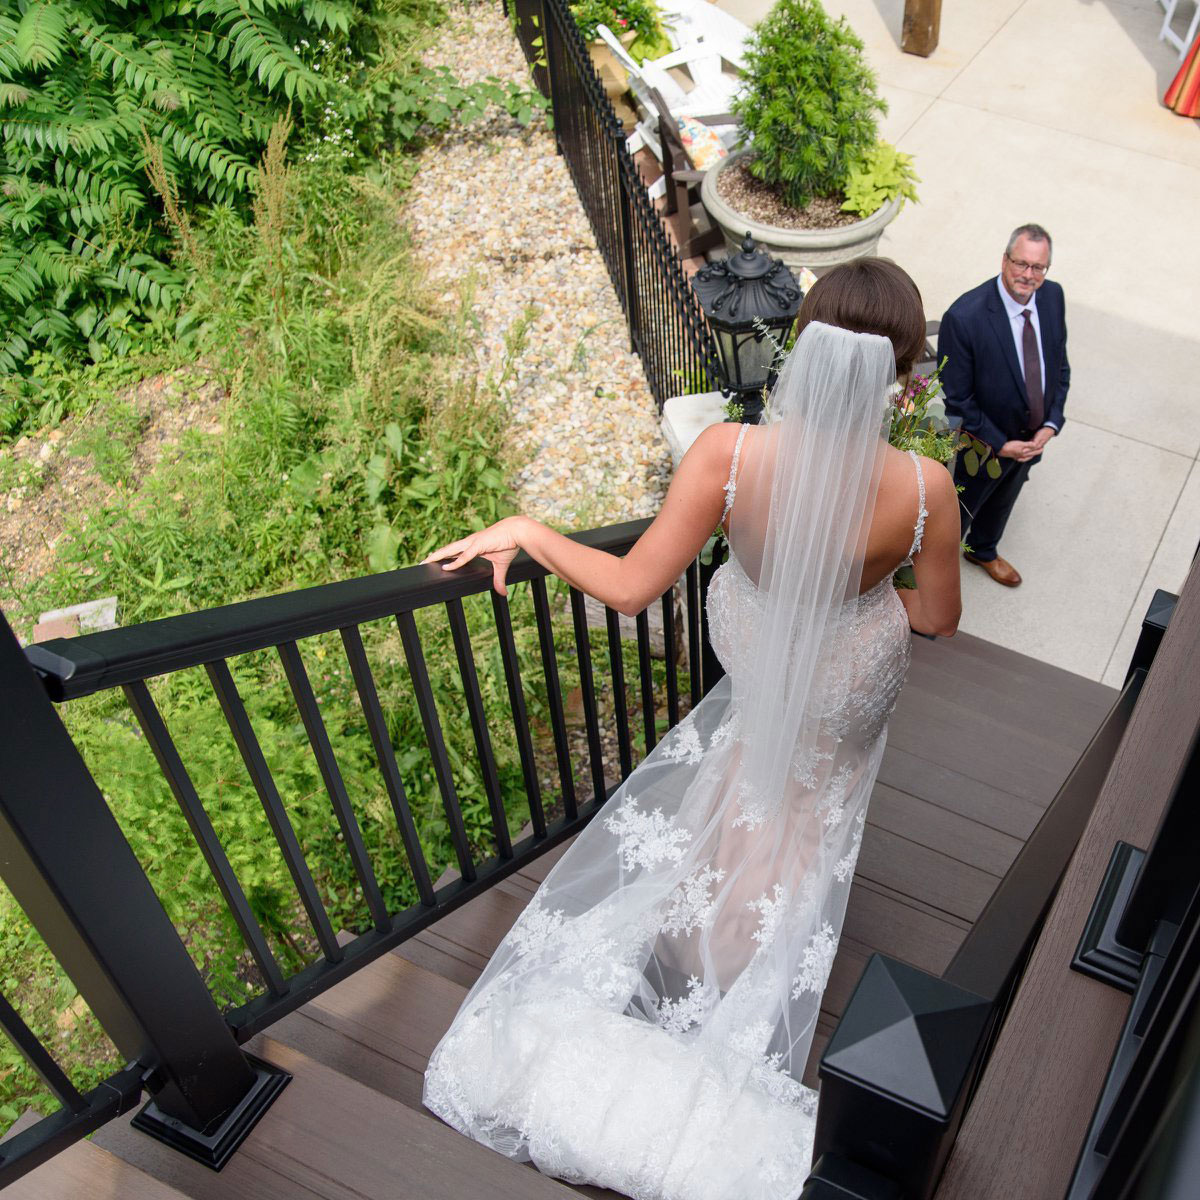 Bride Exiting The Bridal Suite